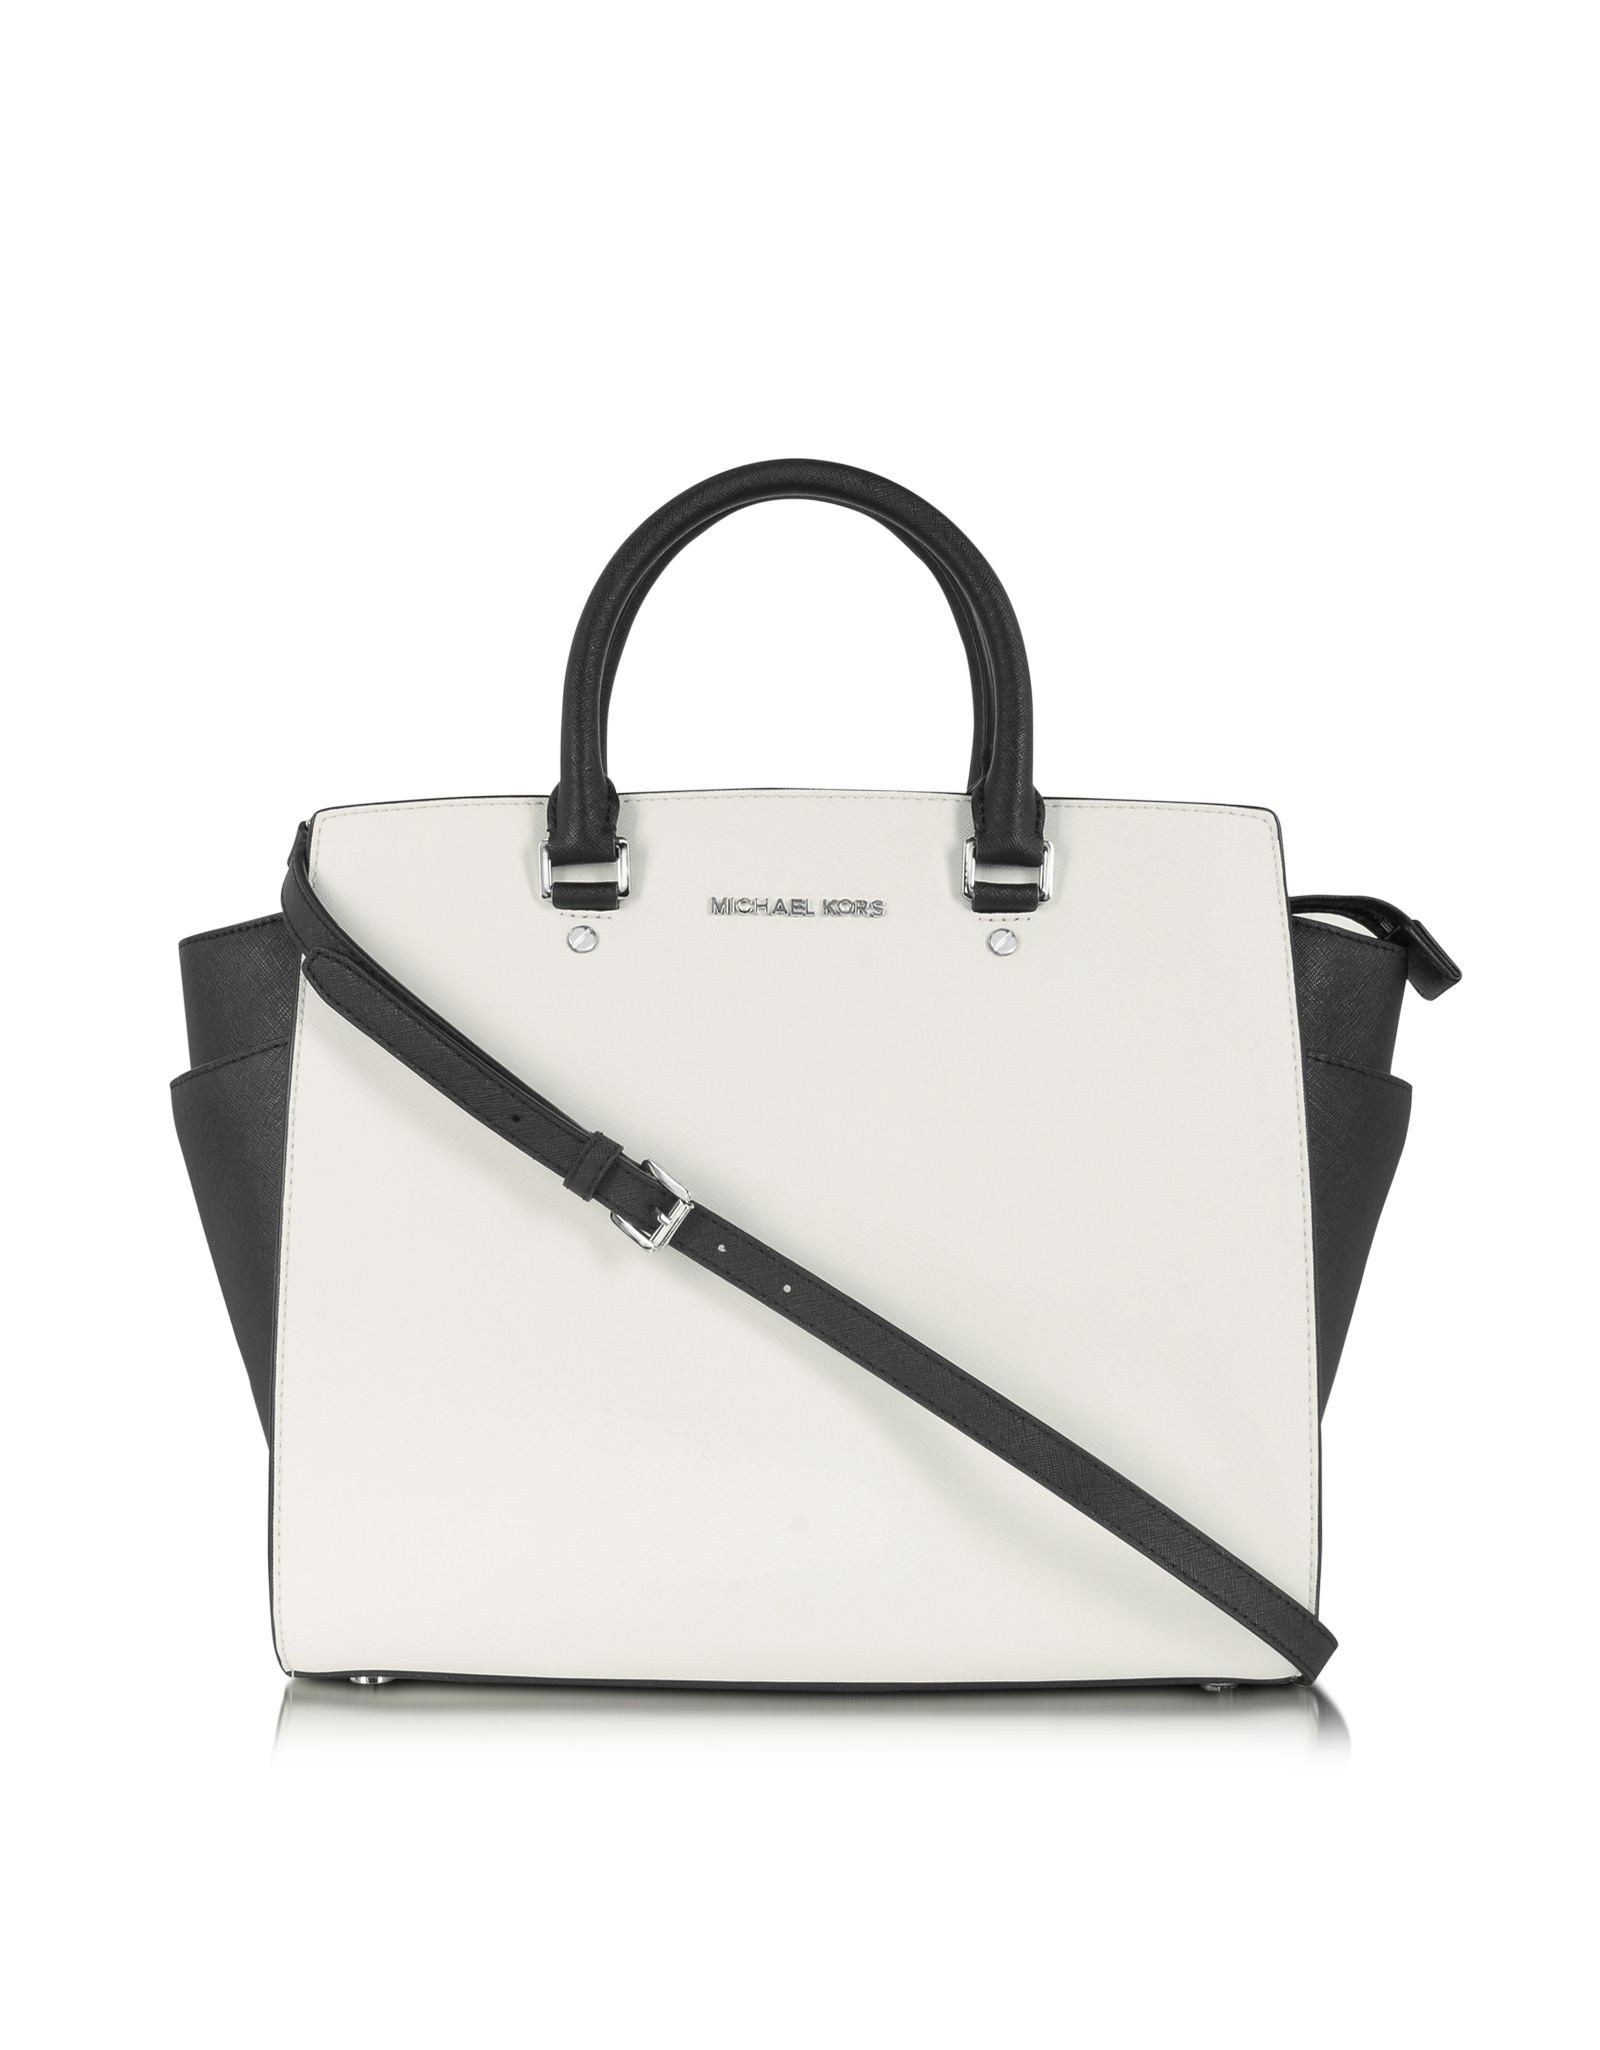 640b0a36607a5 Michael Kors Color Block Large Selma Saffiano Leather Tote in White ...